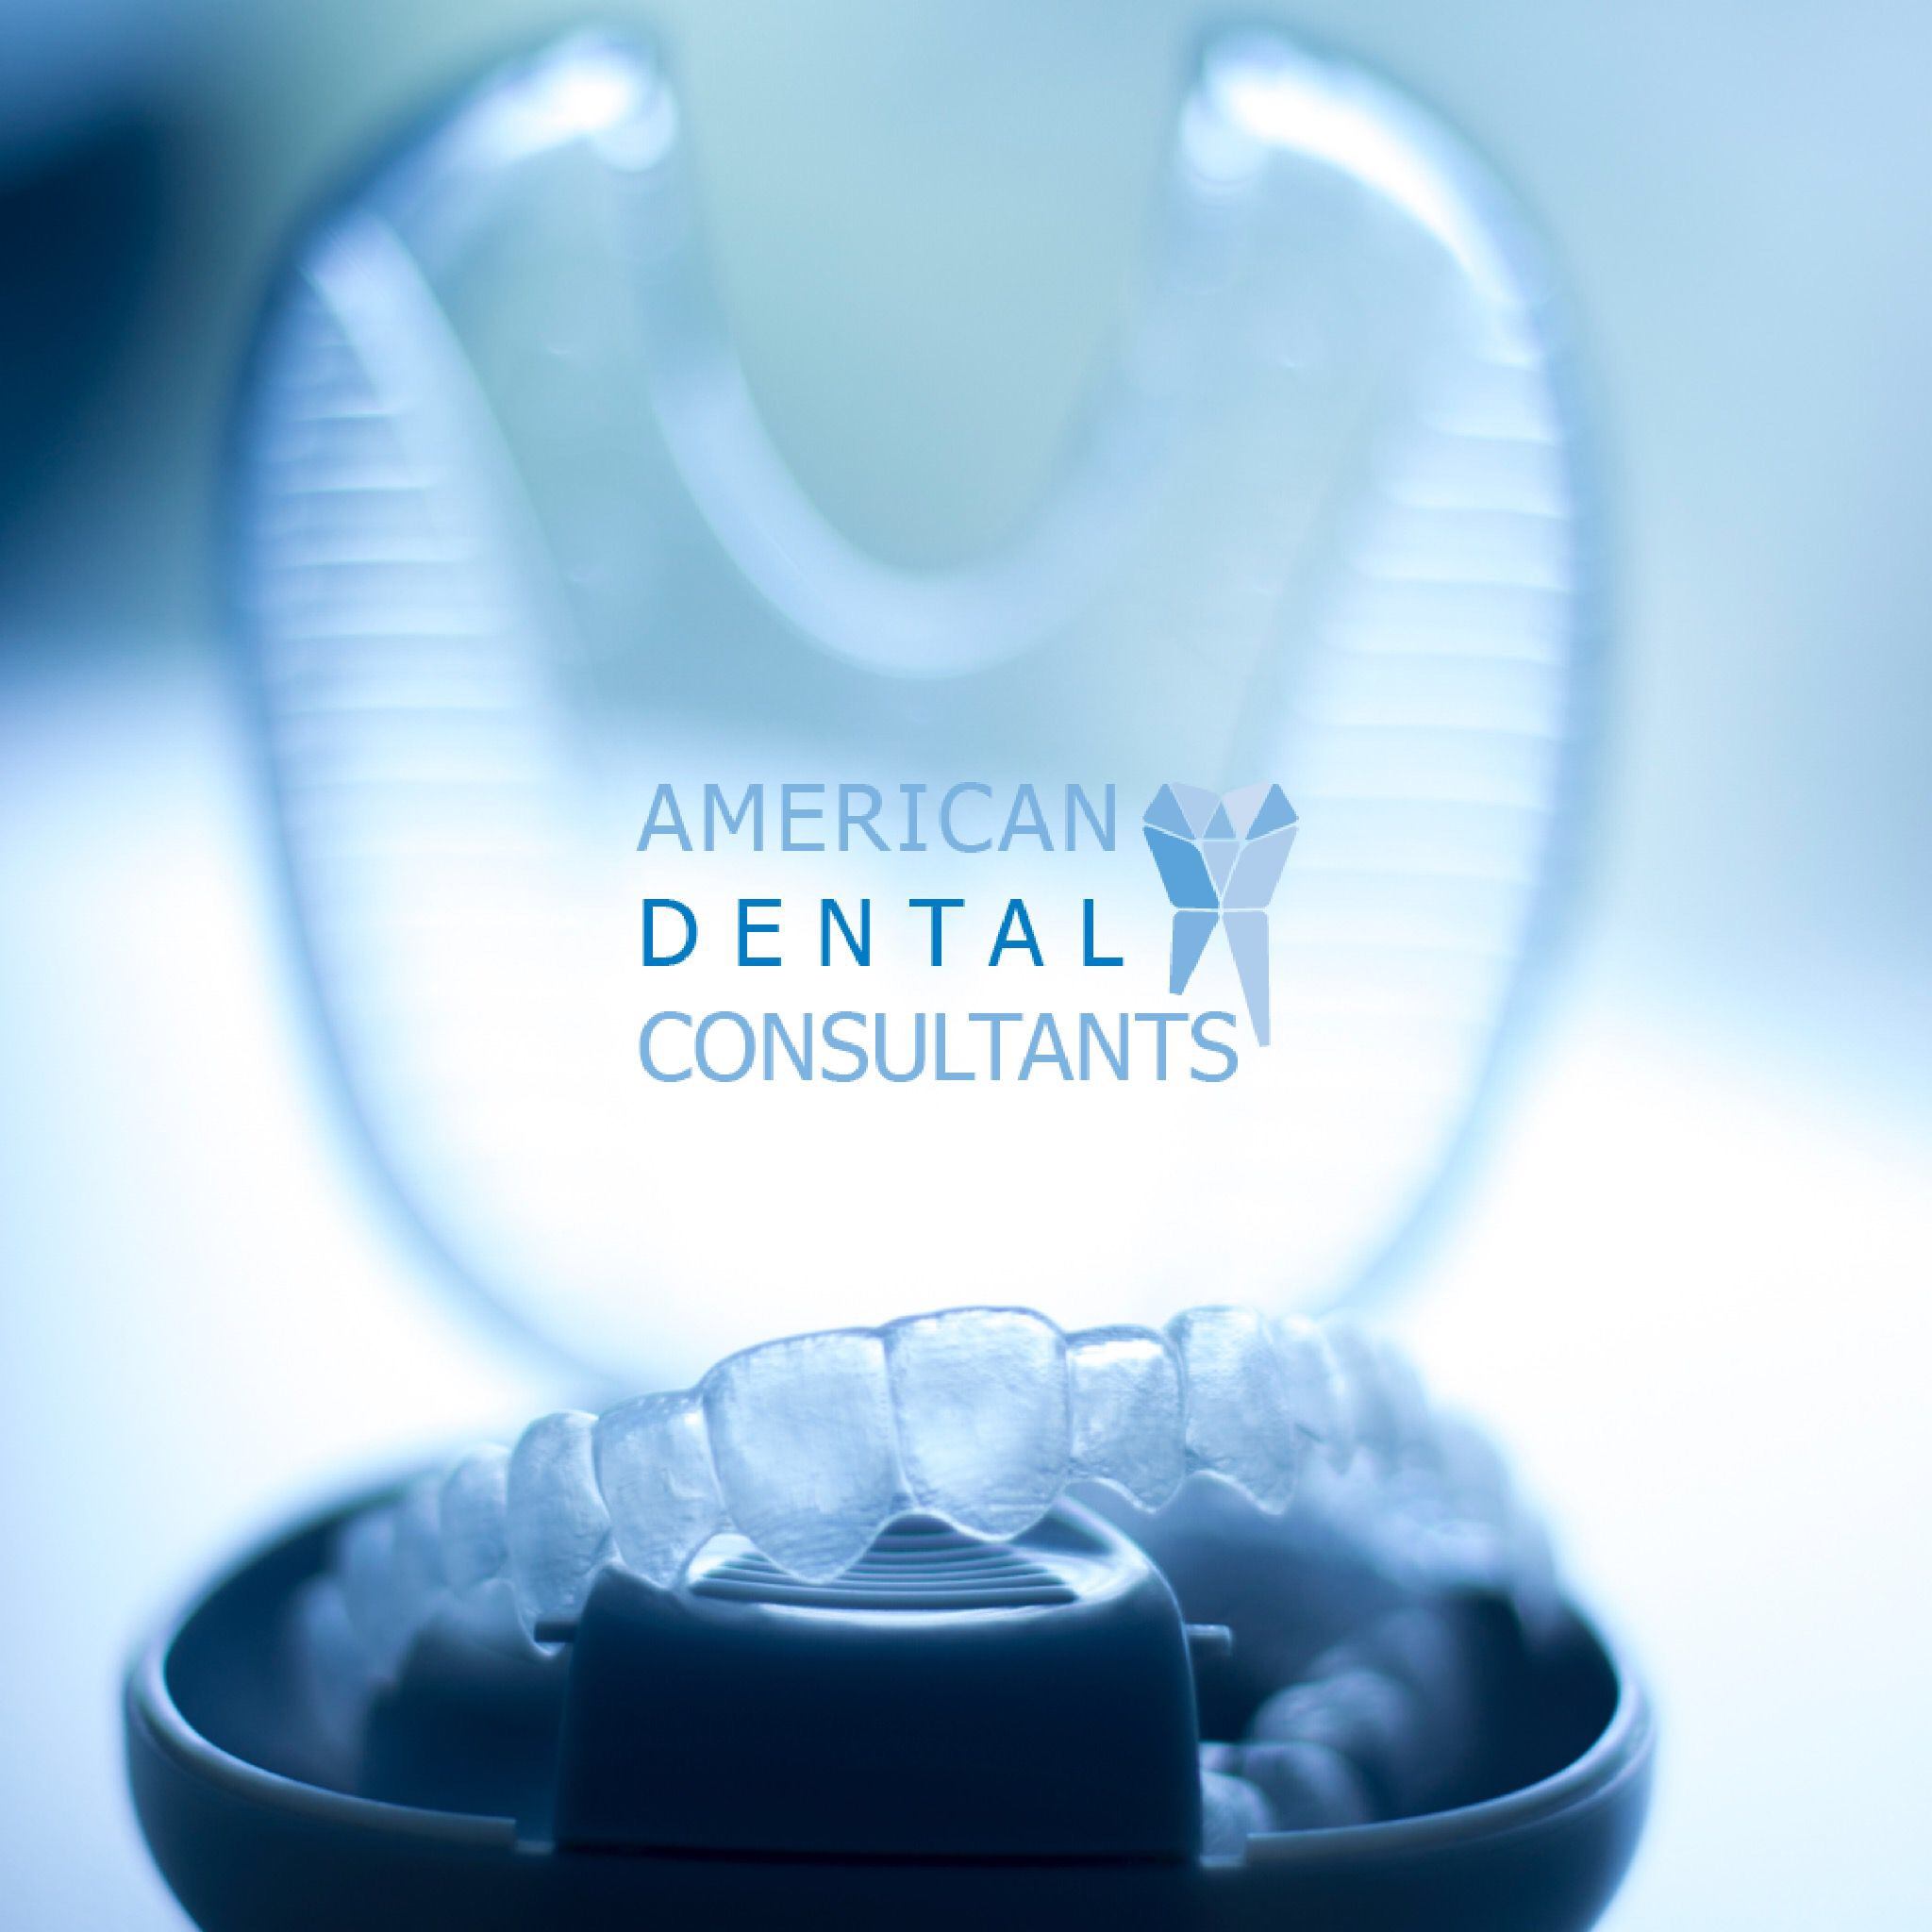 Invisalign Promotion - We are currently listed as a 2018 Top 1% Elite Invisalign Provider in the USA. Our easy payment plan offers programs designed to provide verity of health care financing with ZERO interest rates.